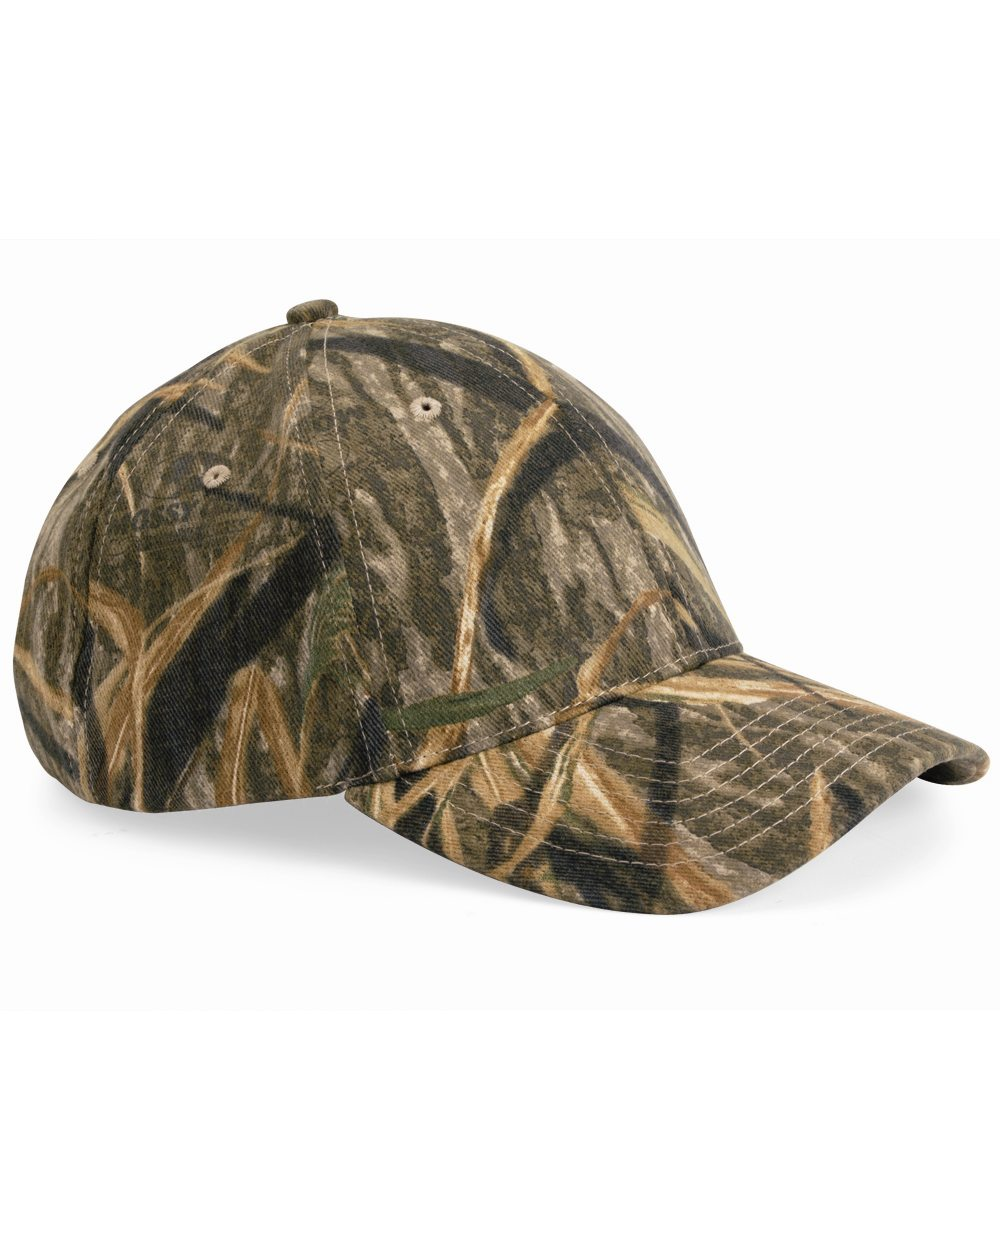 KATI MO18 Structured Mid-Profile Mossy Oak Camouflage ...